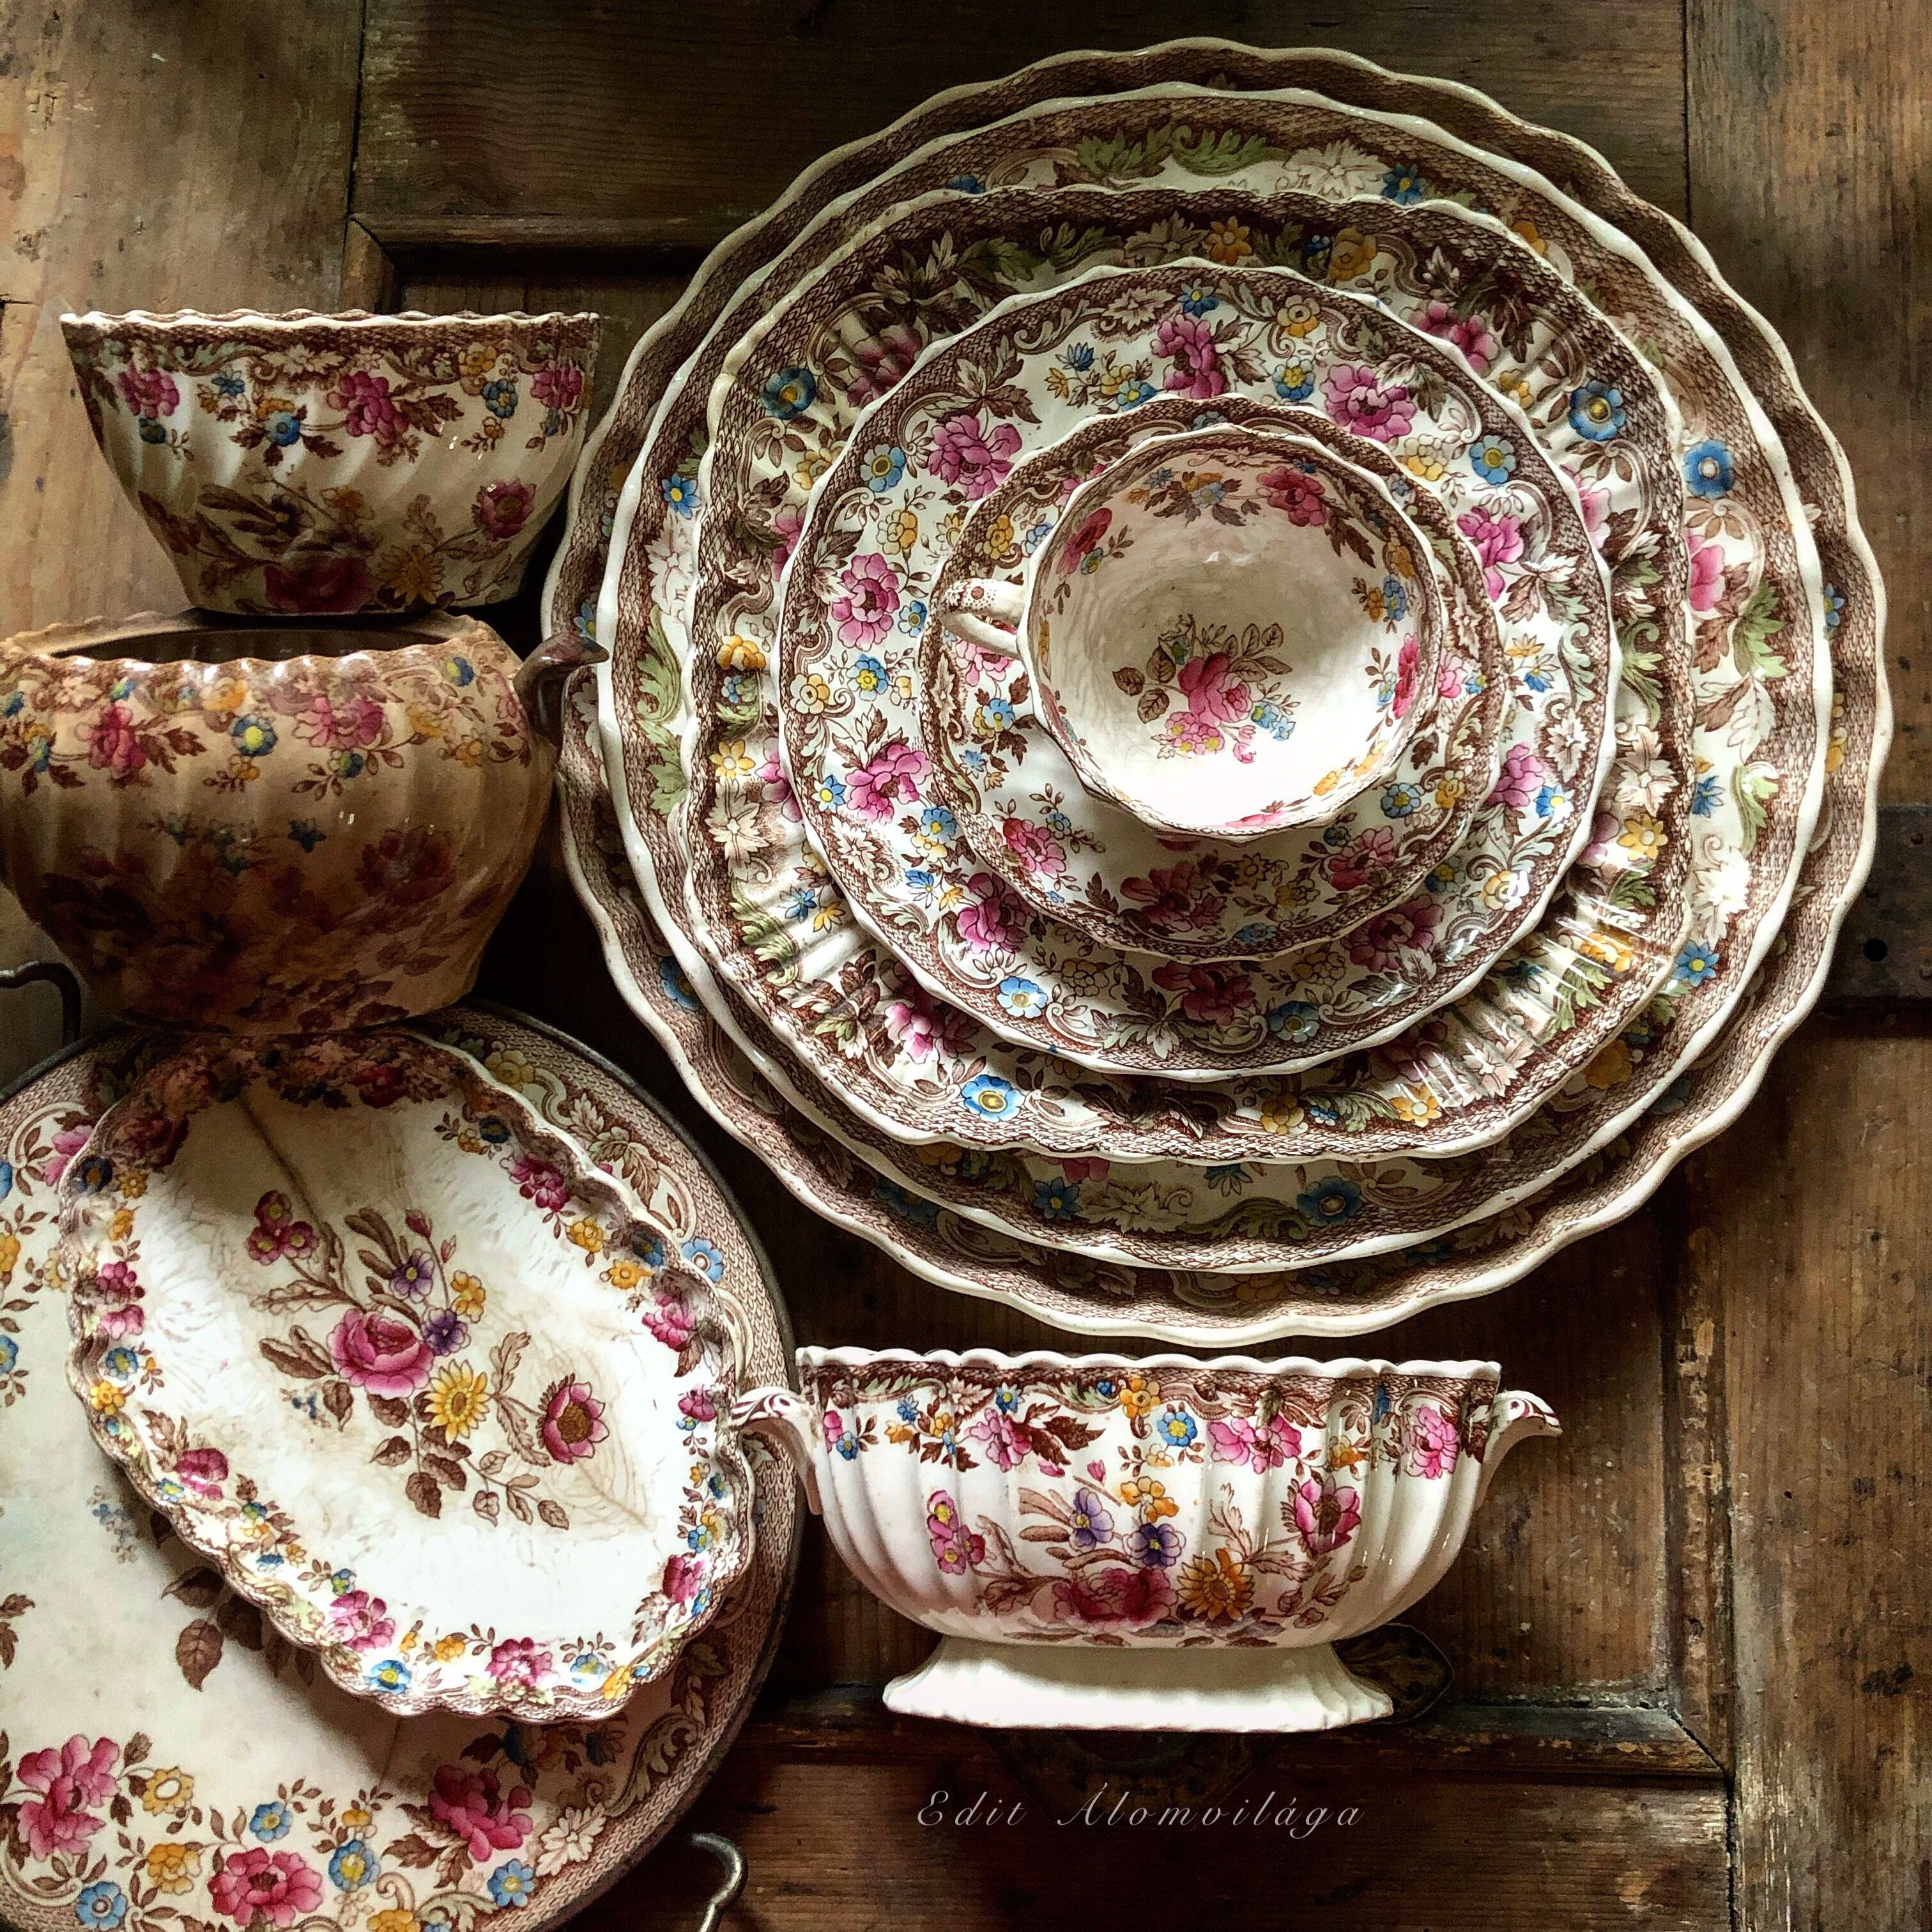 Stunning China China Patterns Antique Dishes Vintage Dishes